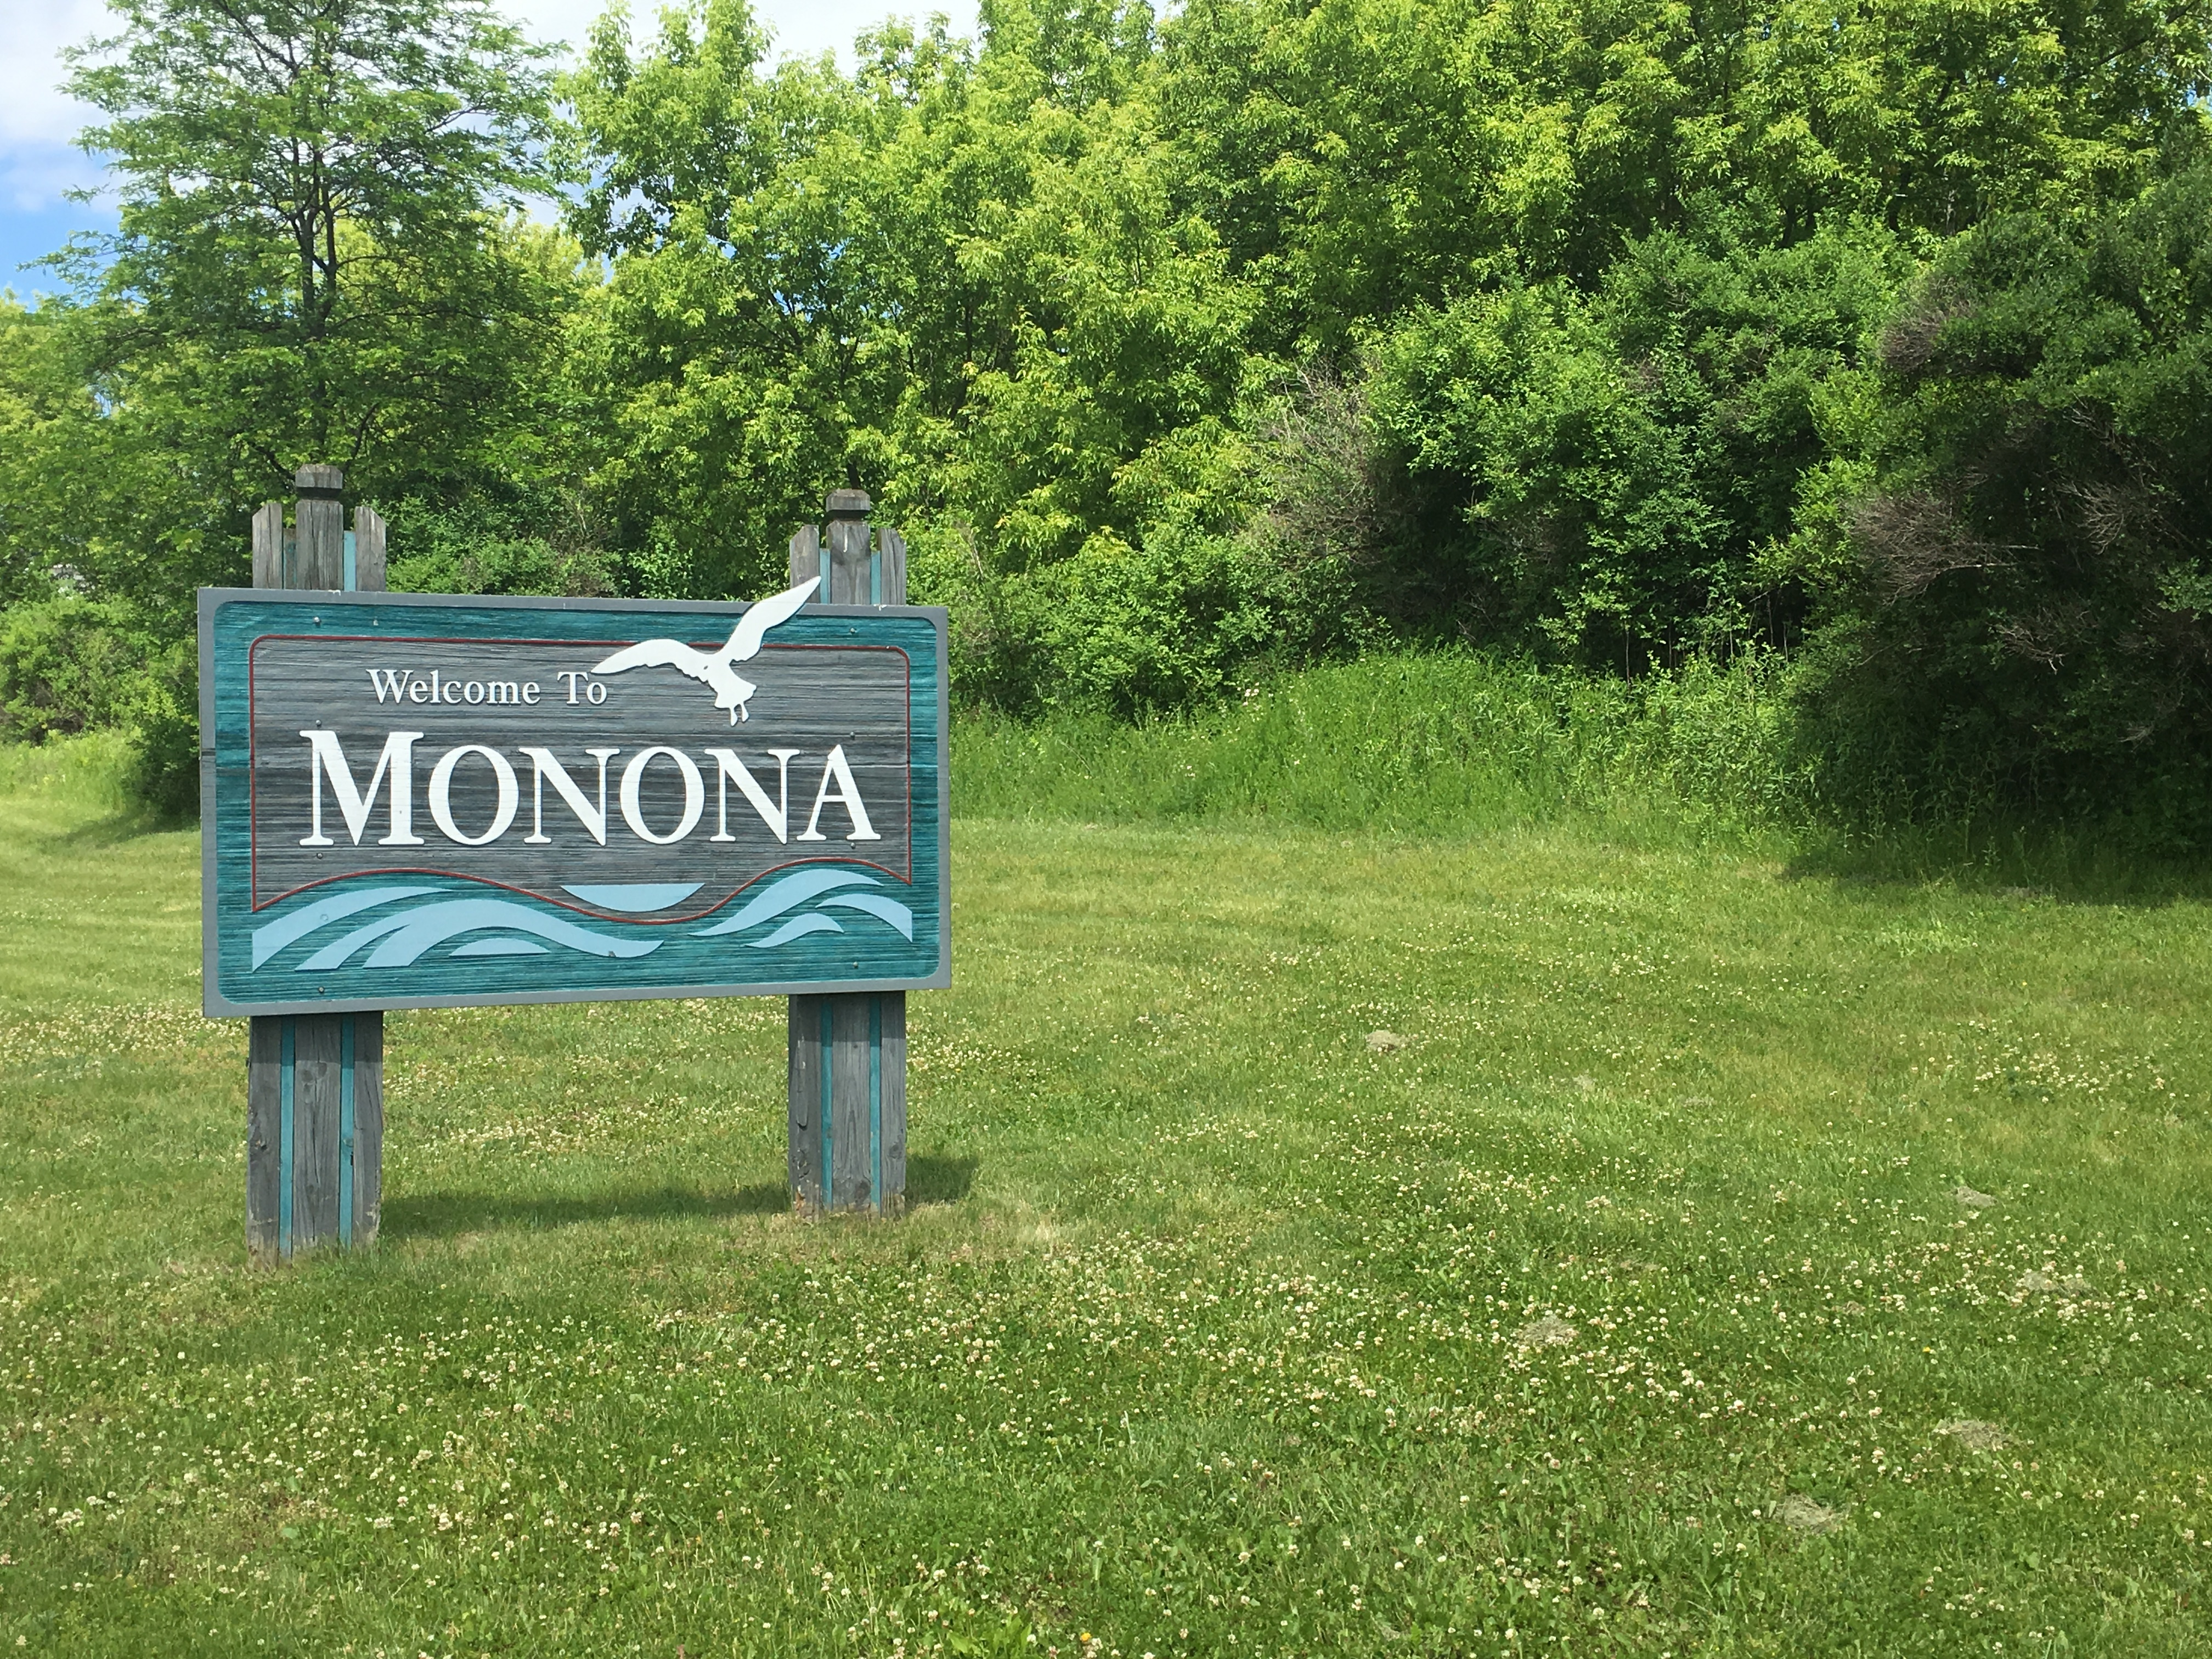 Homes For Sale Middleton Wi >> Monona WI Real Estate | Homes, Condos, Lots for Sale